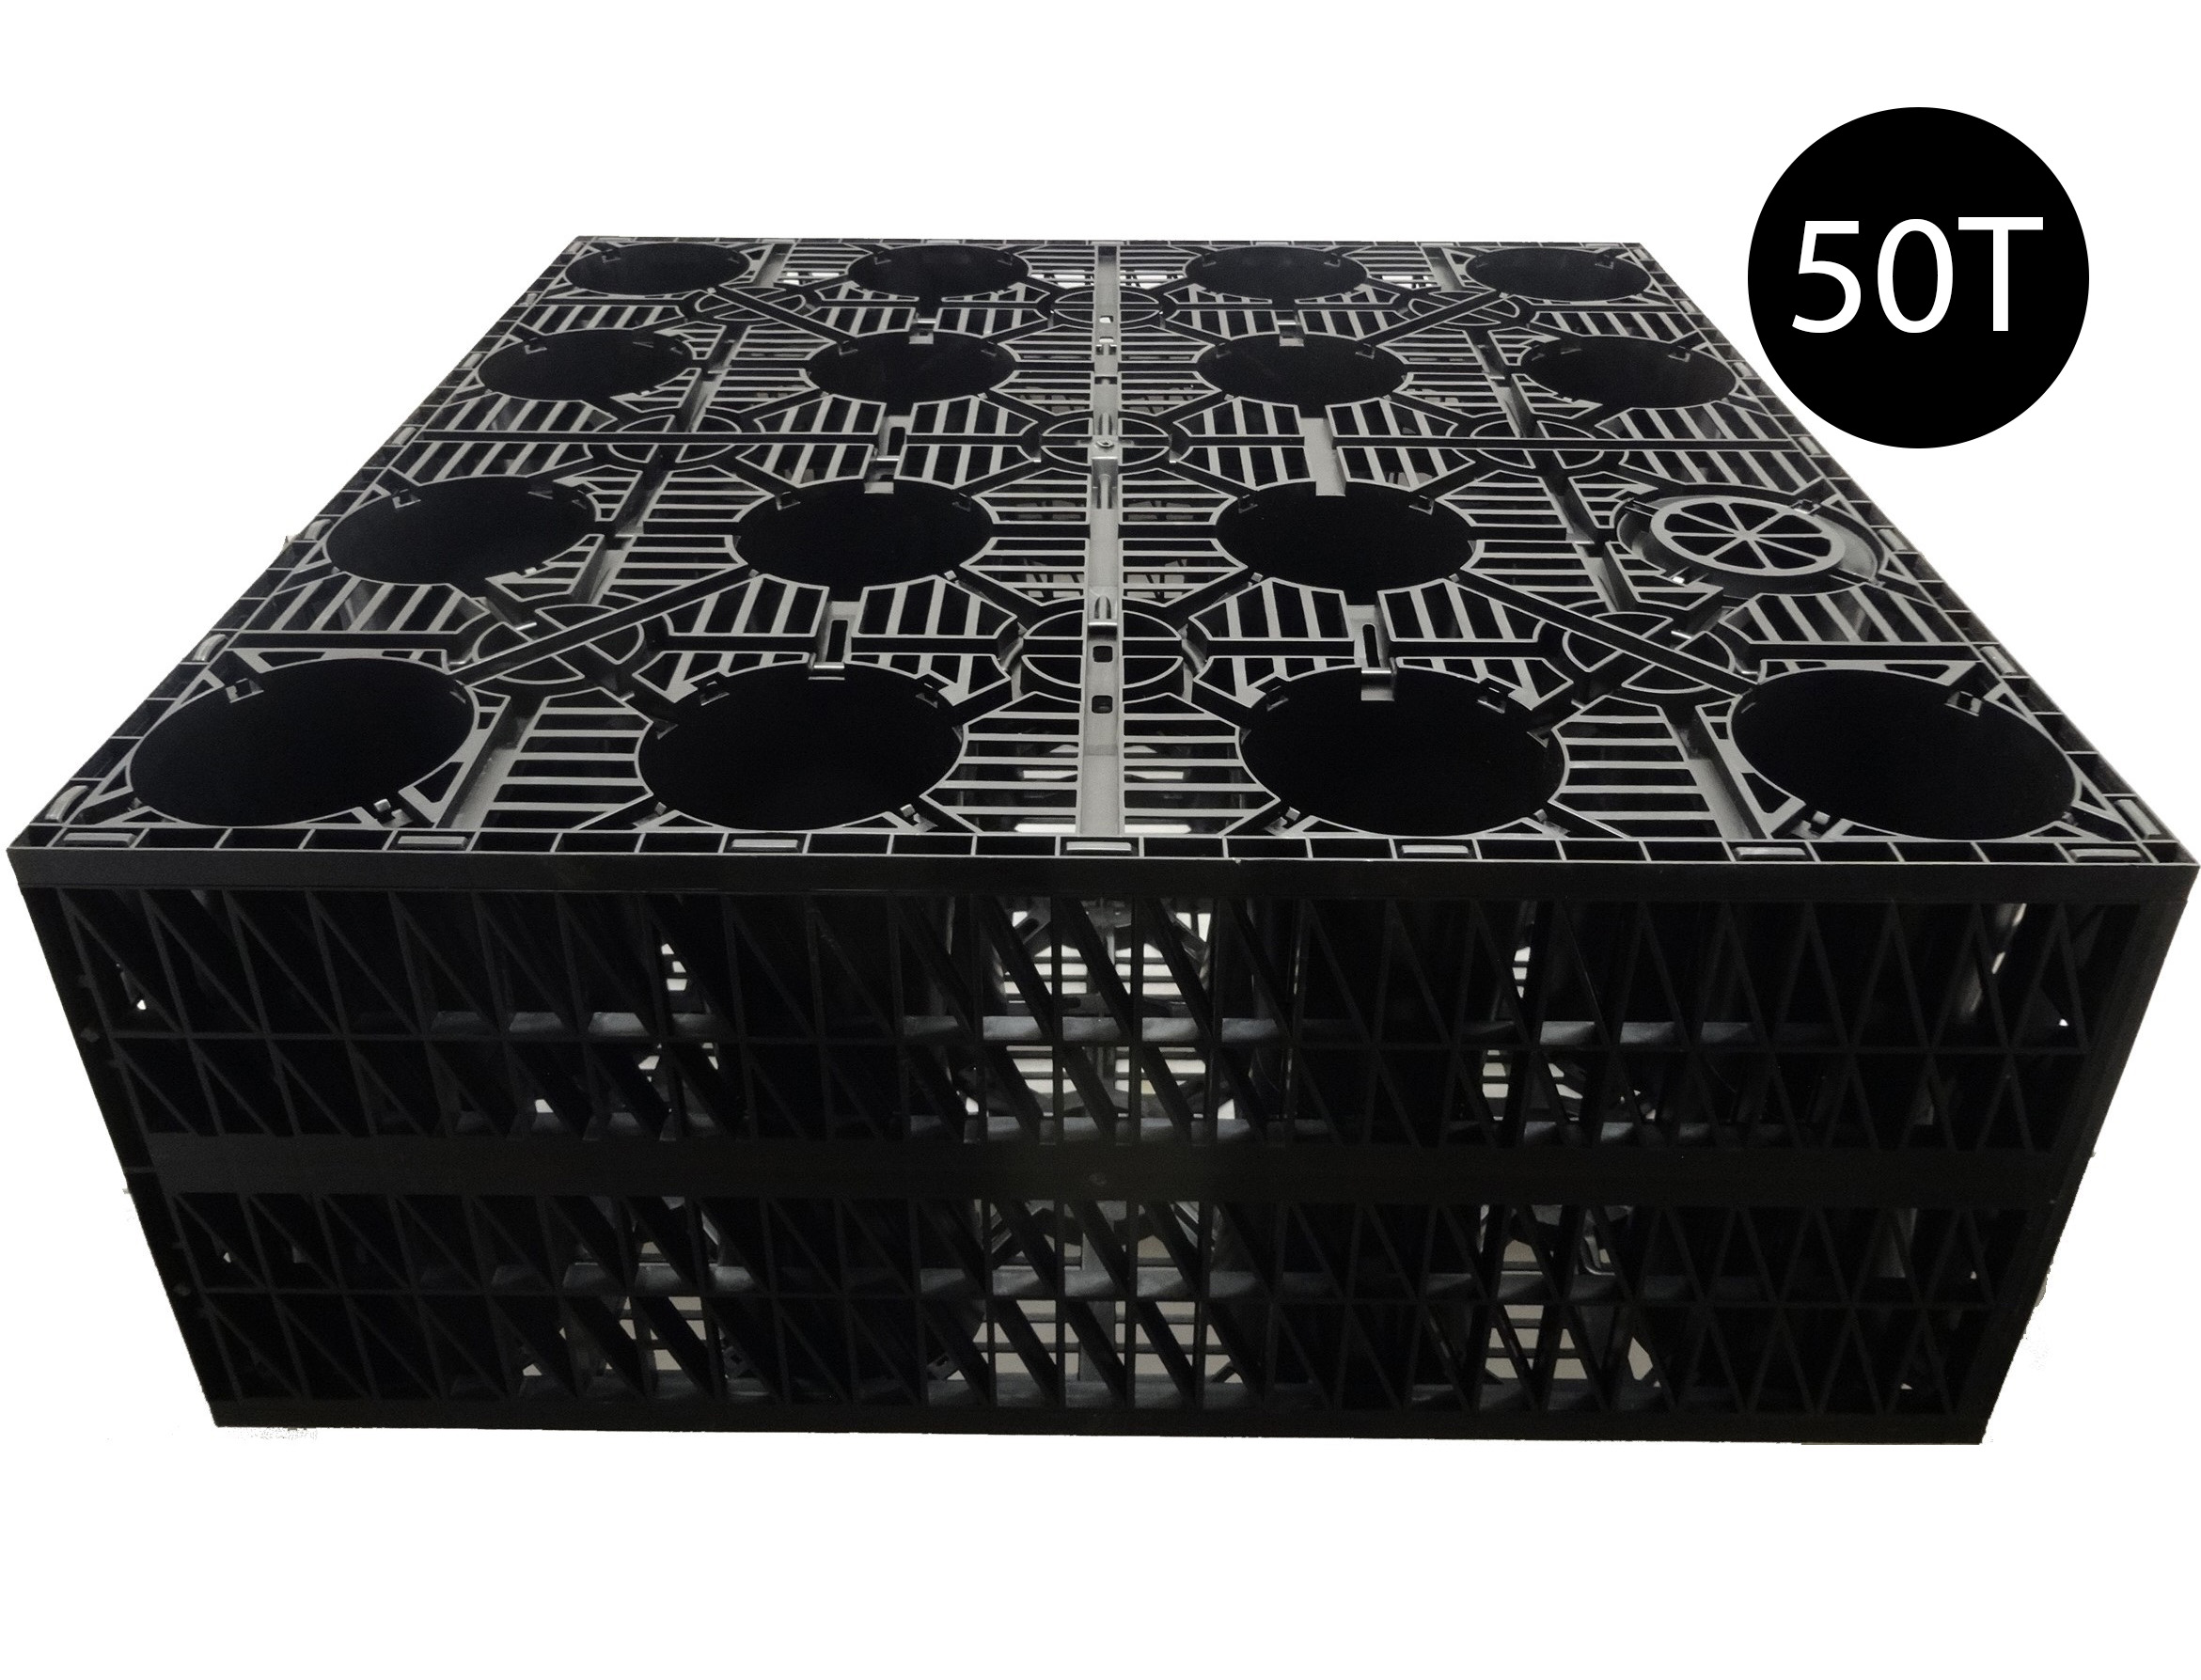 Pennine AquaCrate 440 (Deks Century100) Storm Attenuation Soakaway Crate (50T) - 1000x1000x400mm (0.4m3)